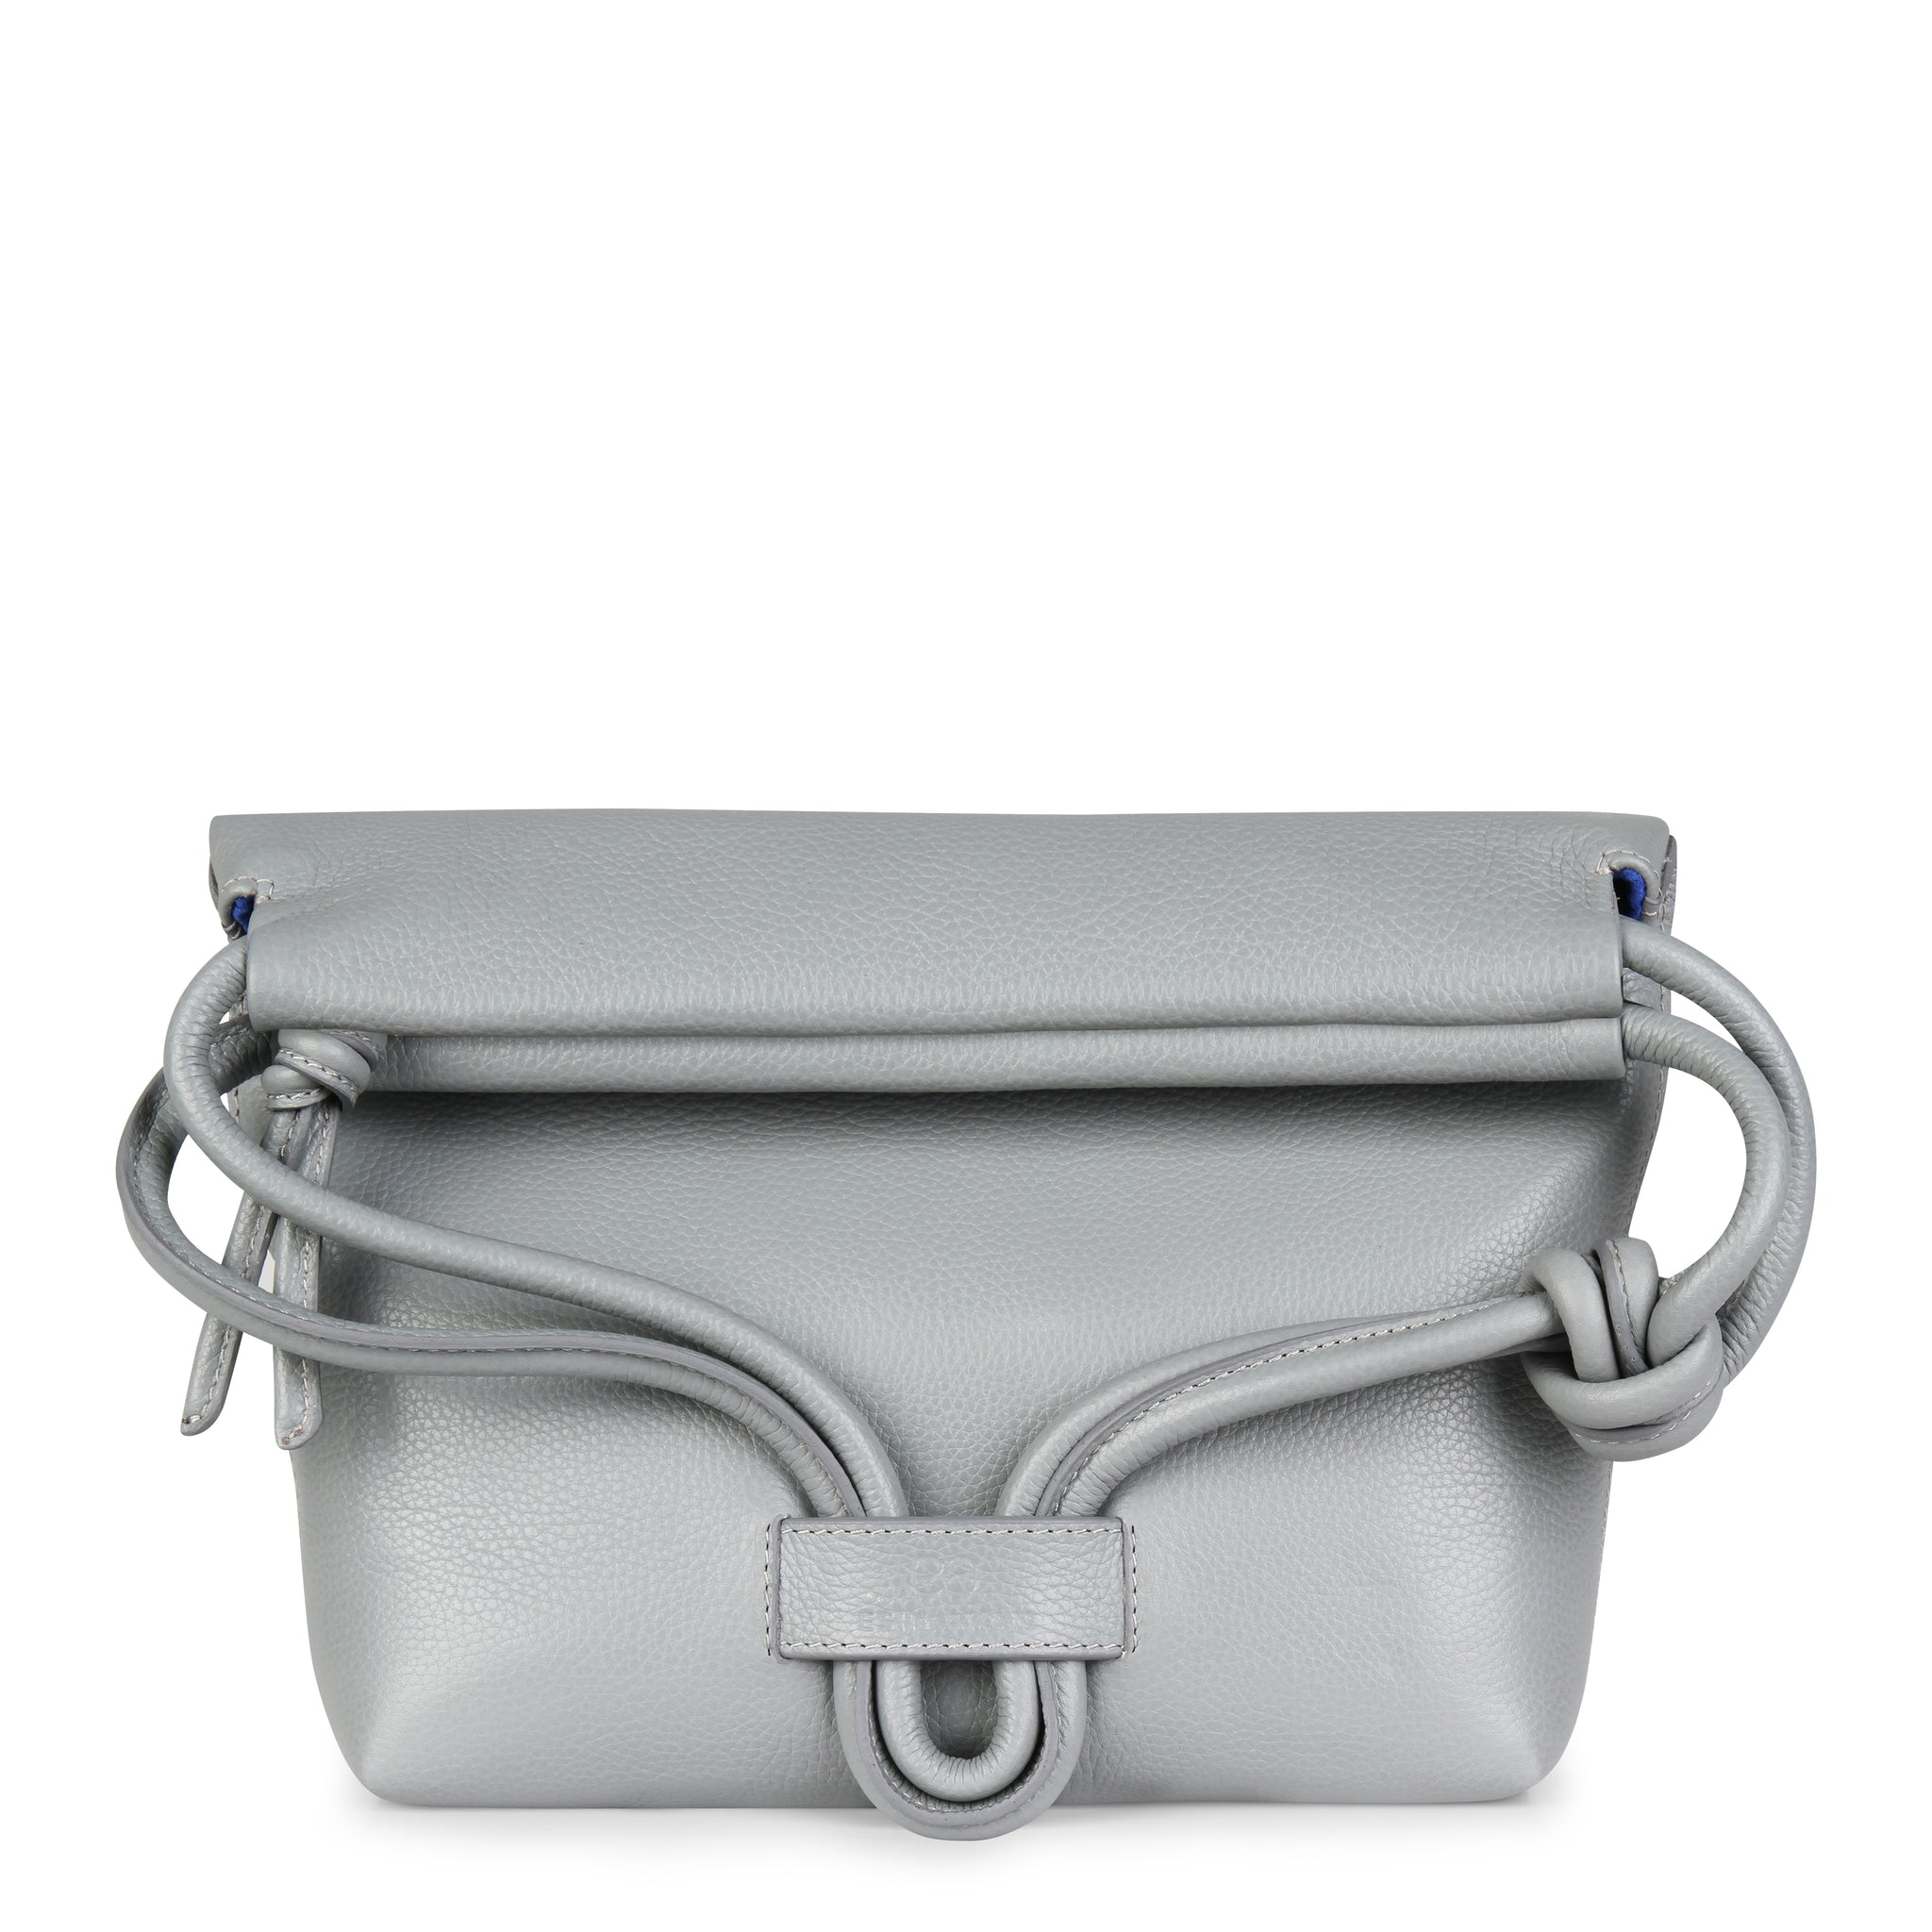 A light grey convertible leather small shoulder bag with a knot detail on the strap shown as a clutch with its roll down feature.